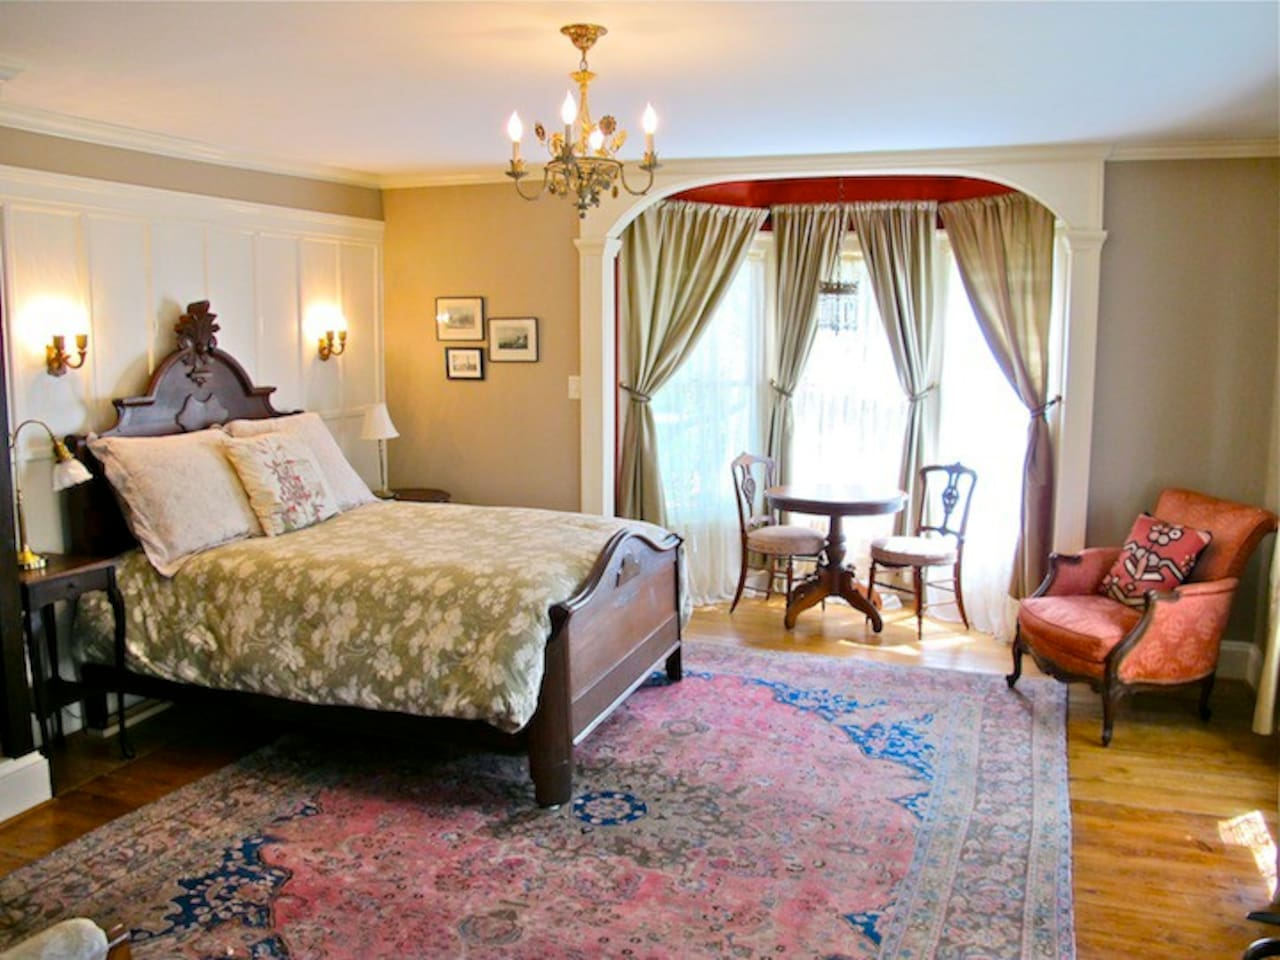 The Green View room has a queen zied bed with armoire, dining set, side chair and love seat